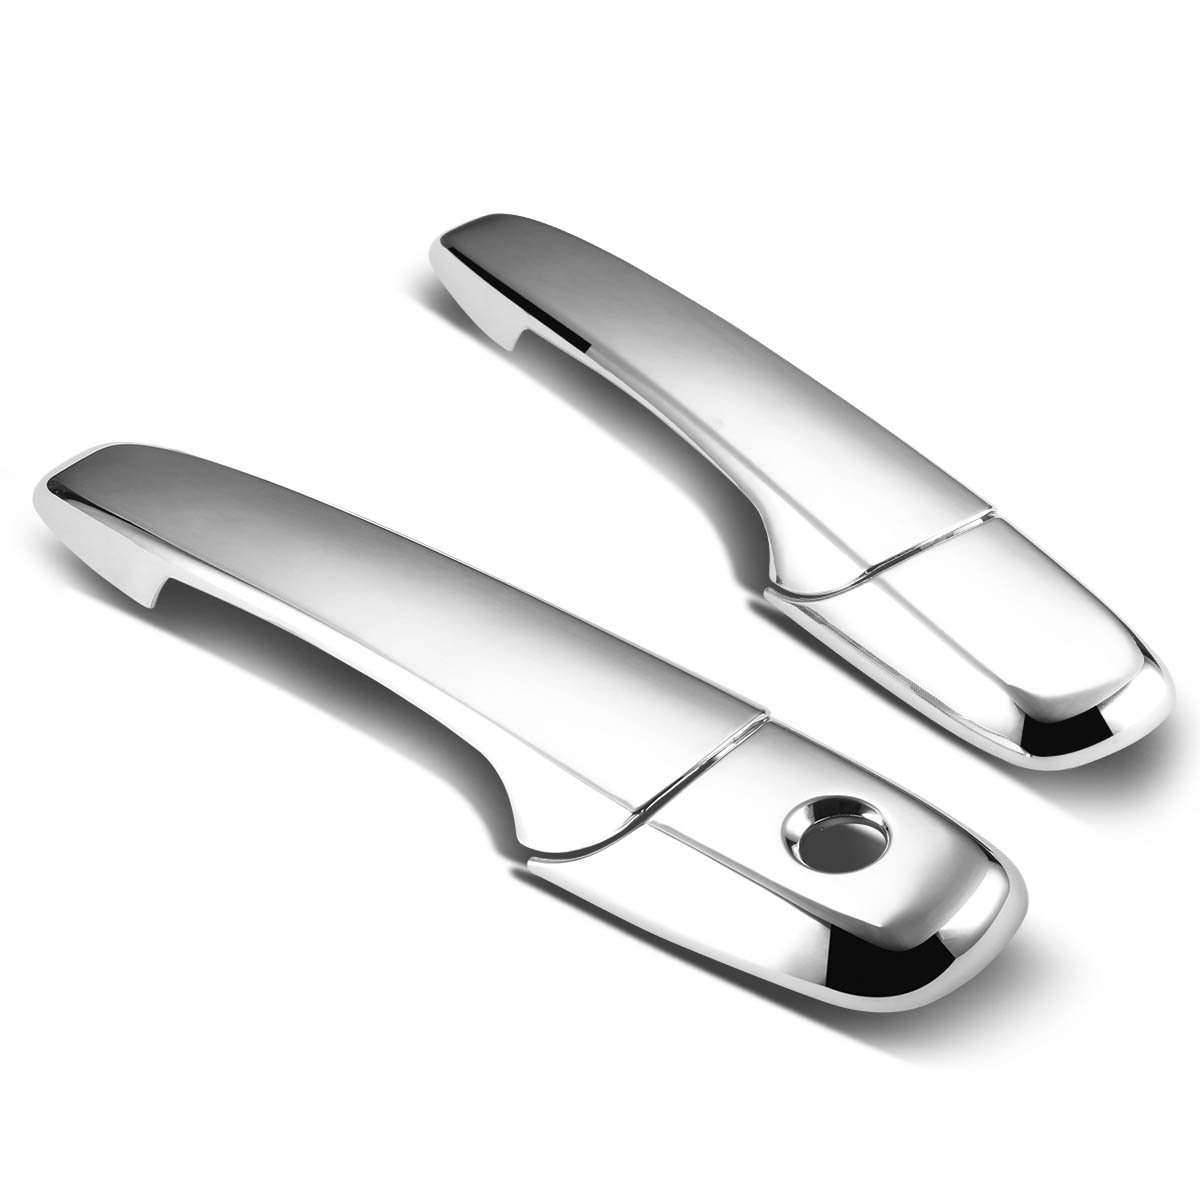 2005 2014 Ford Mustang Chrome Plated Door Handle Cover Trim